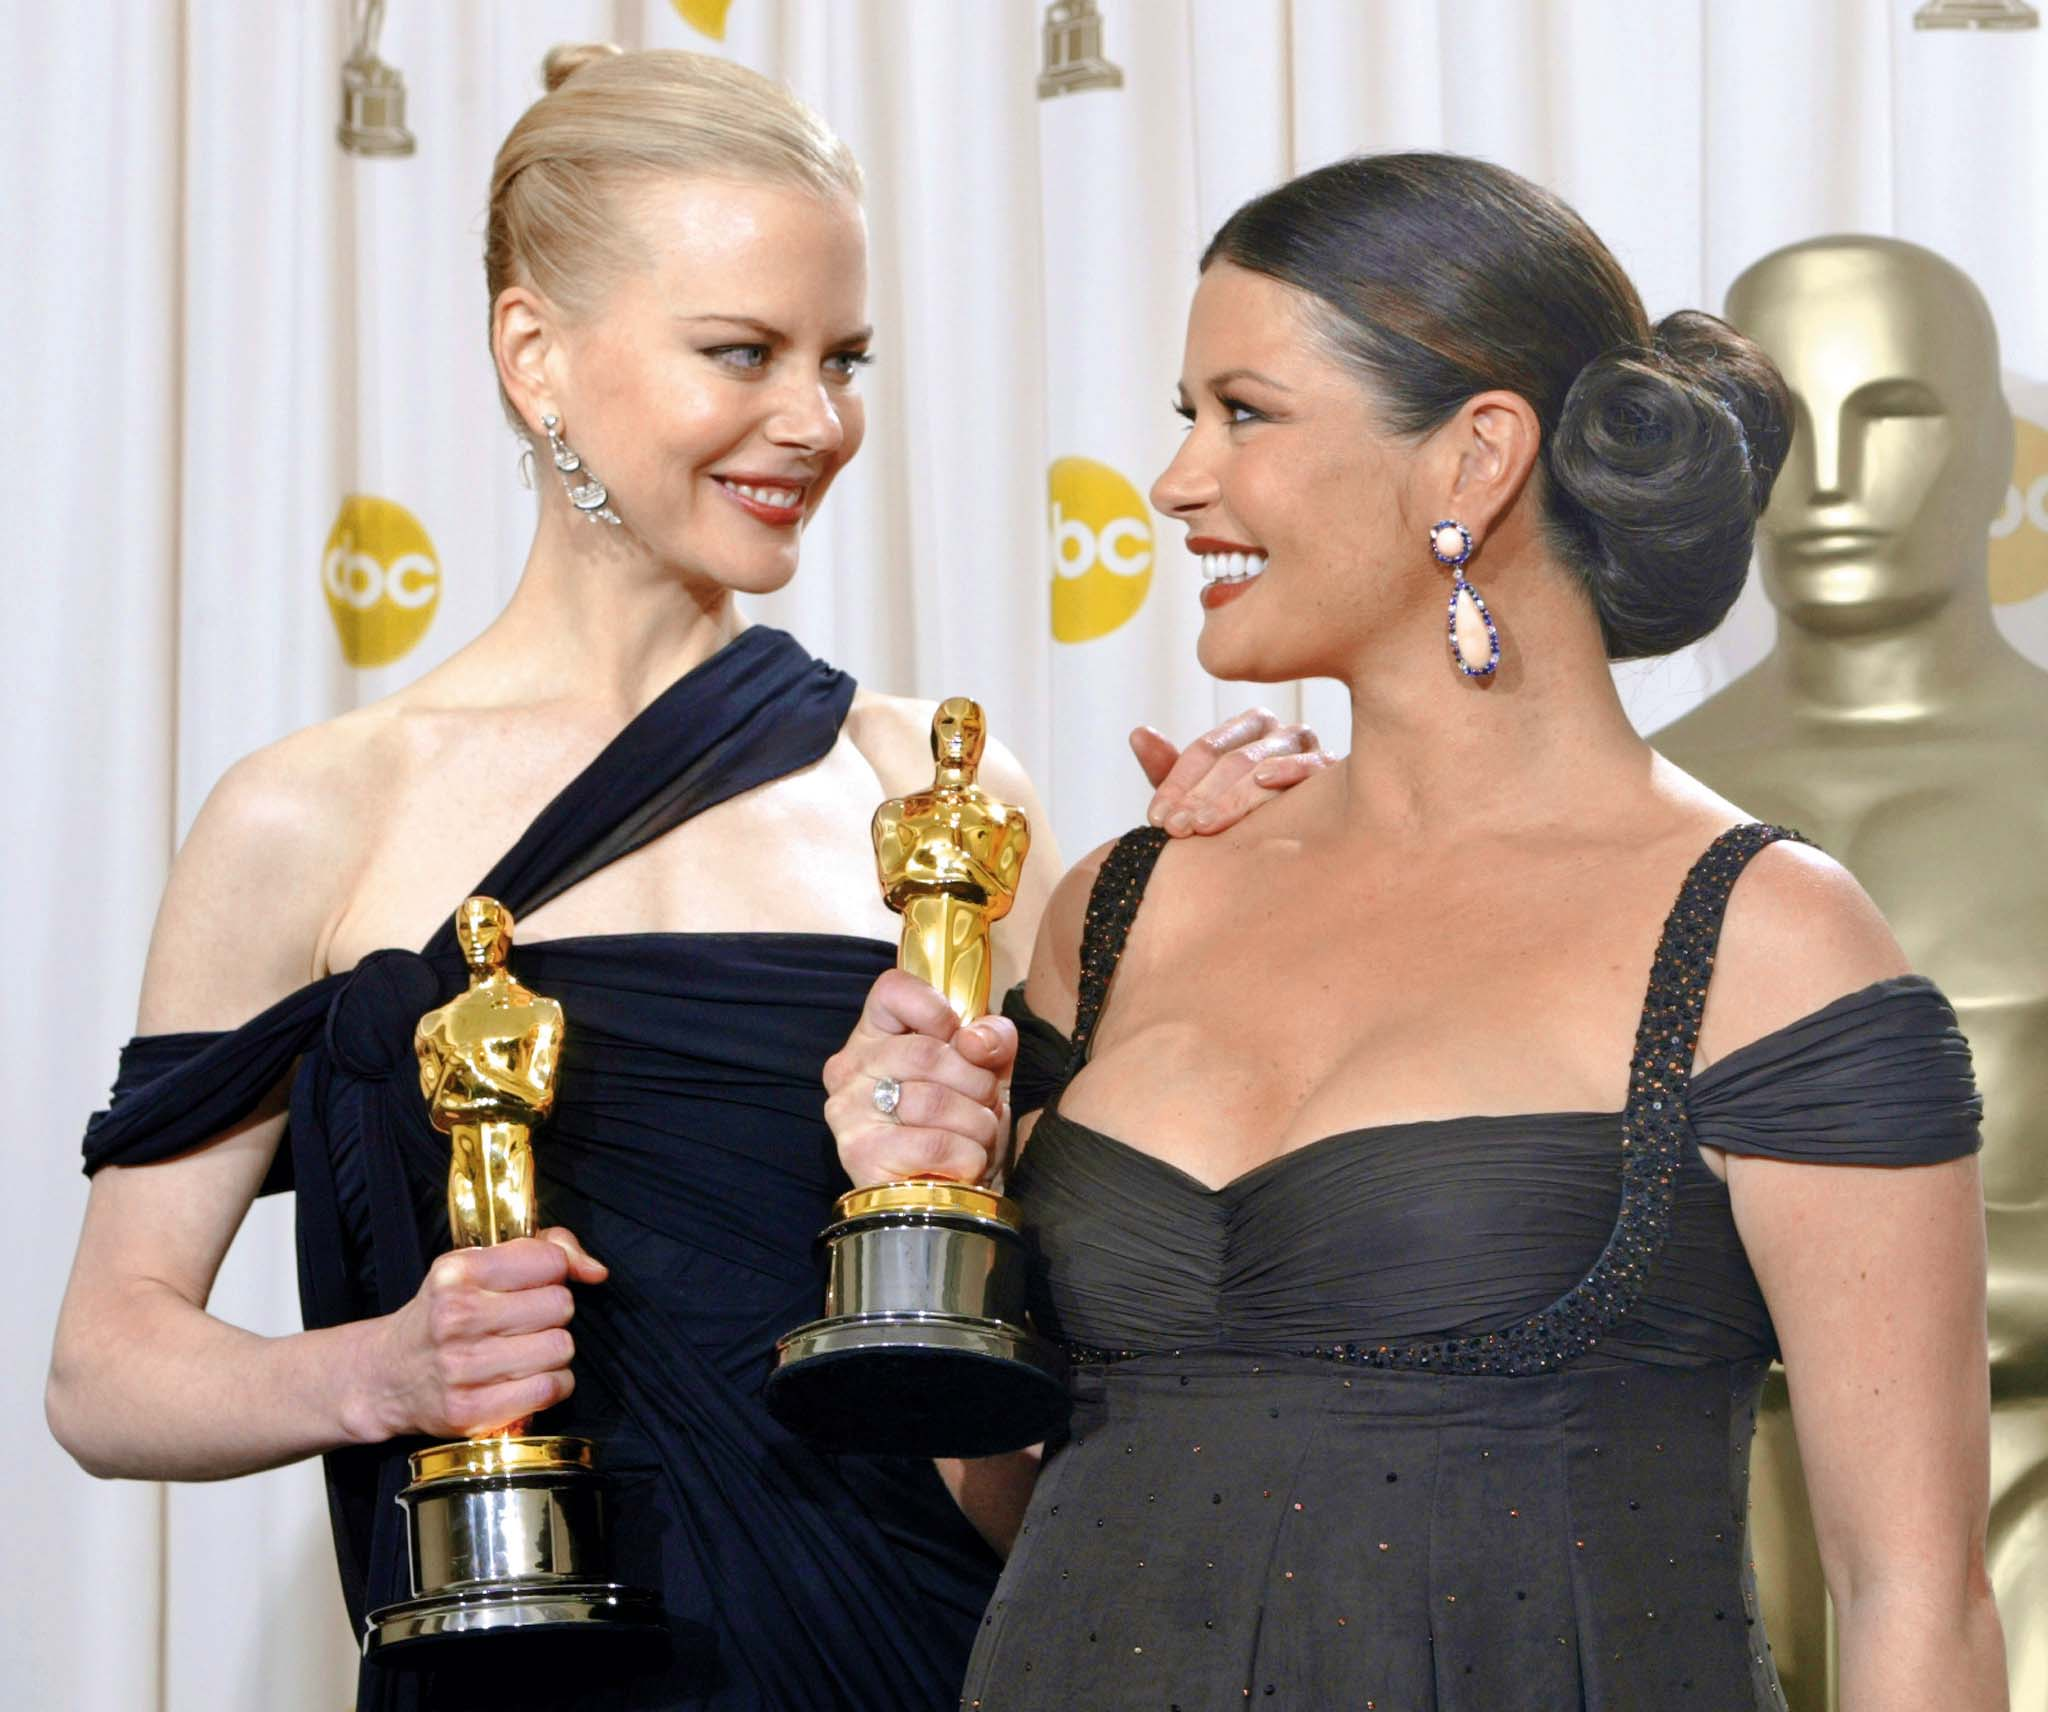 Best actress Oscar winner Nicole Kidman (L) and best supporting actress Oscar winner Catherine Zeta-Jones show off their statuettes after the 75th annual Academy Awards at the Kodak Theatre in Hollywood, California, March 23, 2003. Kidman won for her role in